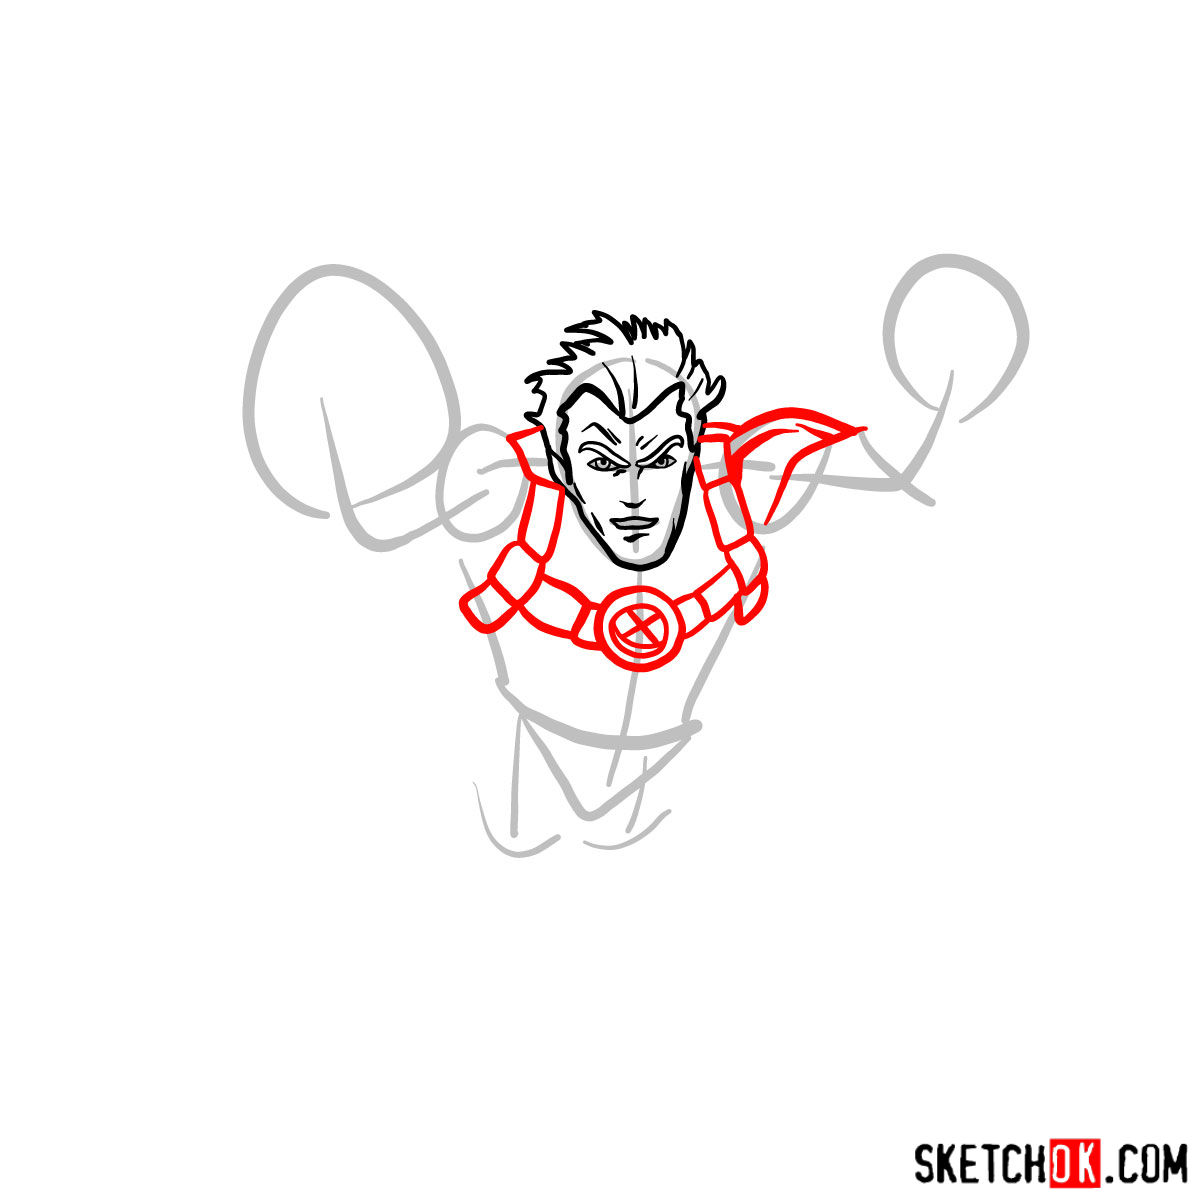 How to draw Cannonball, a mutant from X-Men series - step 04